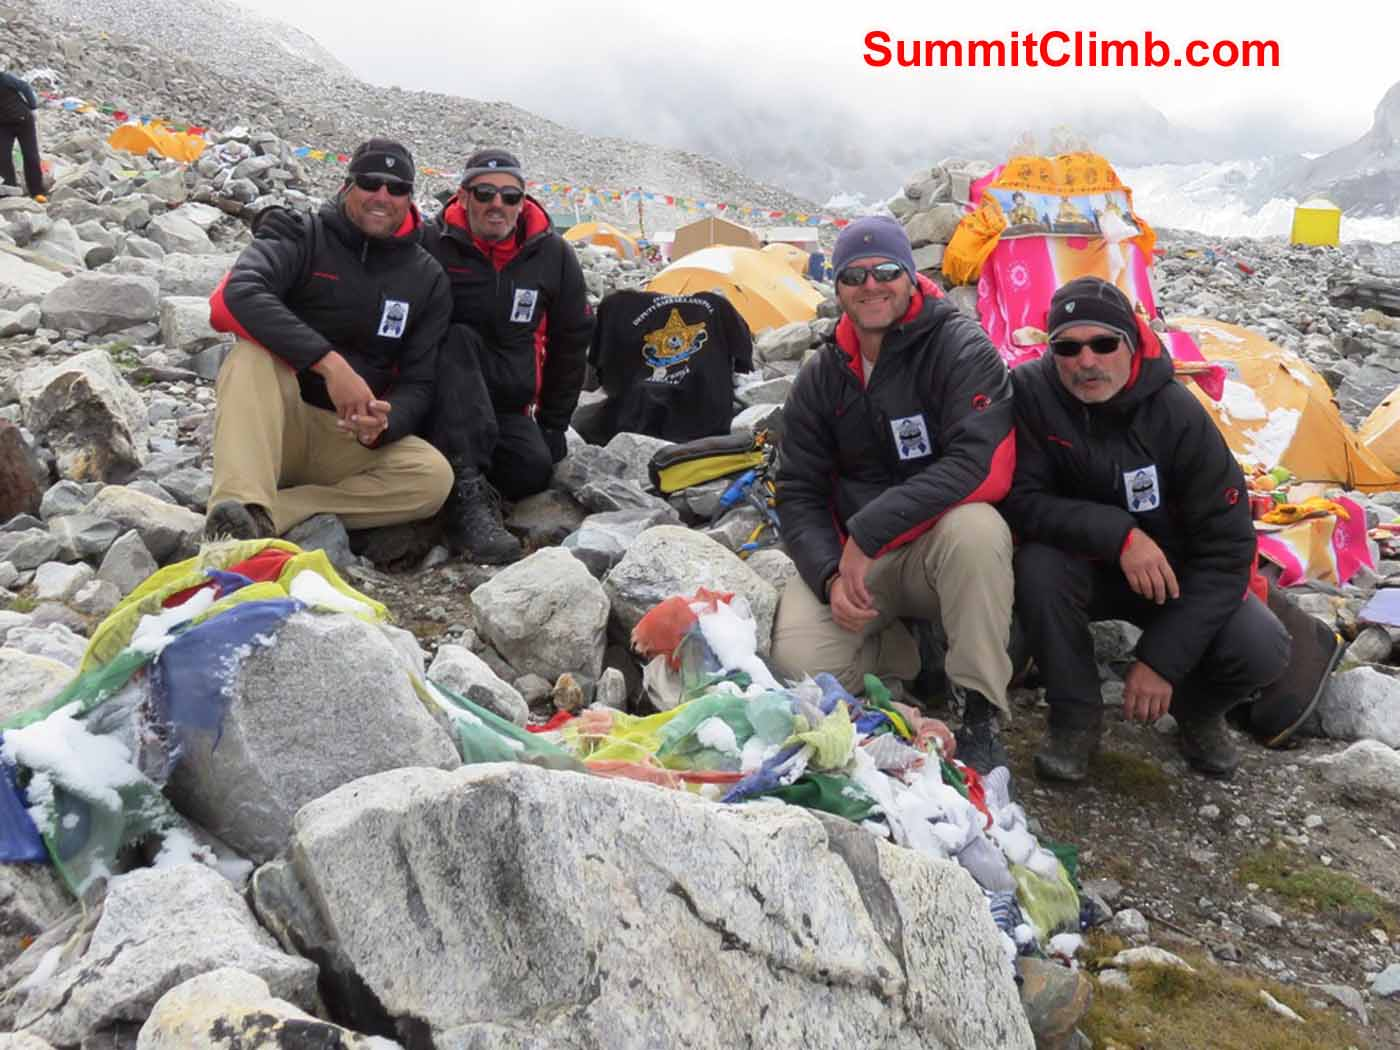 Cops on Top climbers Steve Janke, Stu Frink, Troy Bacon and Kaley Erickson at Advance Base Camp by Kaley Erickson.